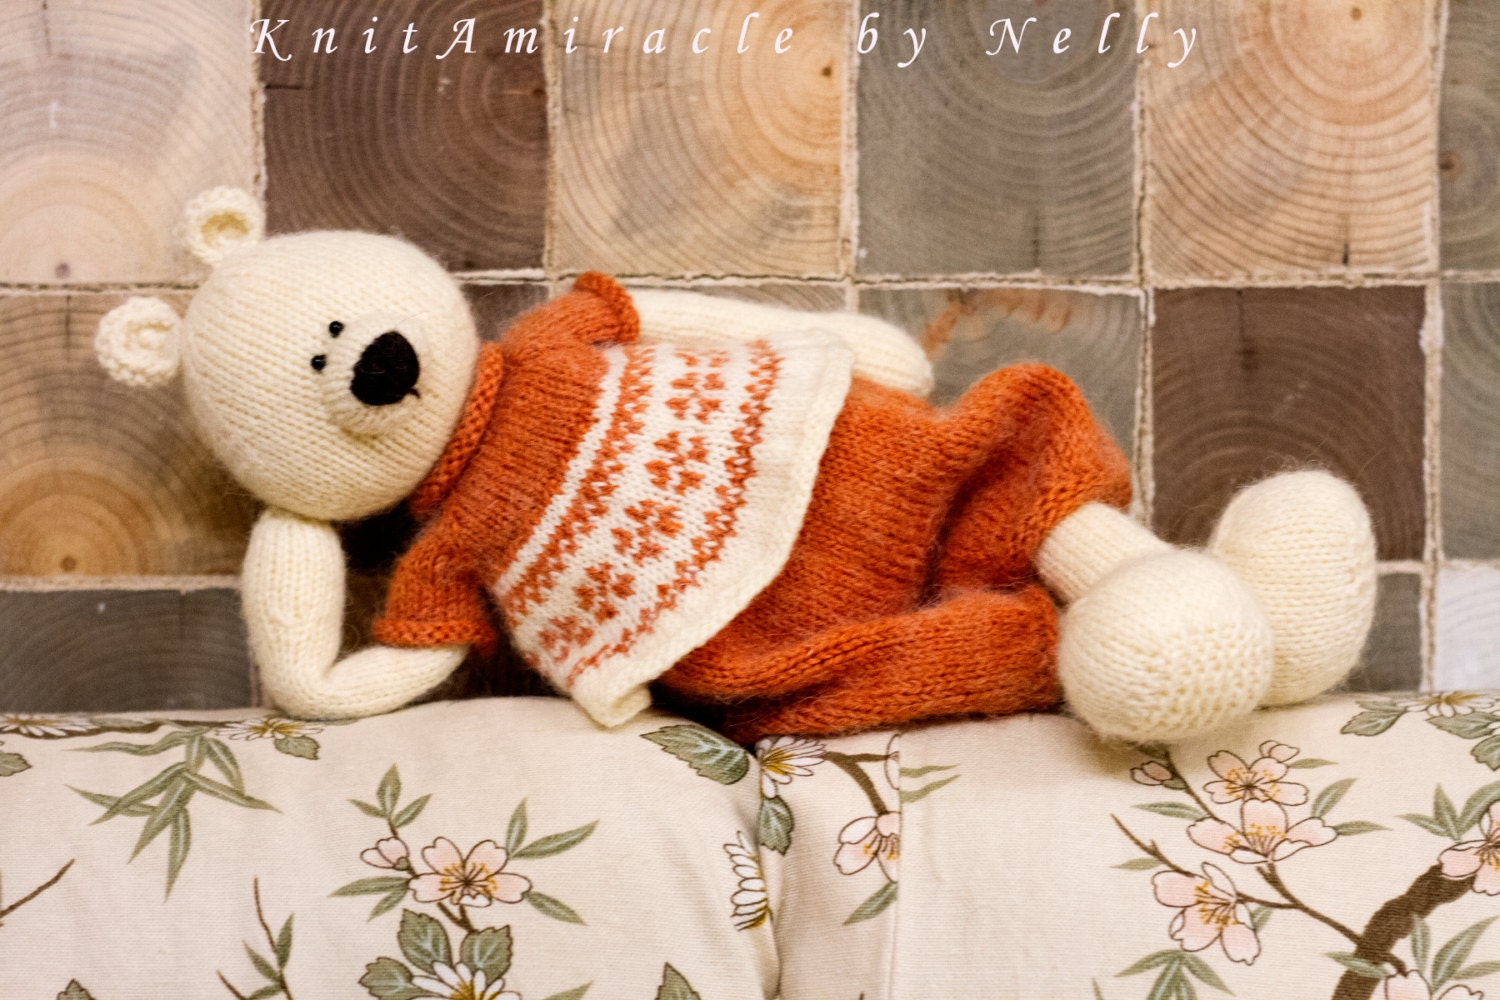 Knitting pattern toy Knitted teddy bear pattern Knit animal